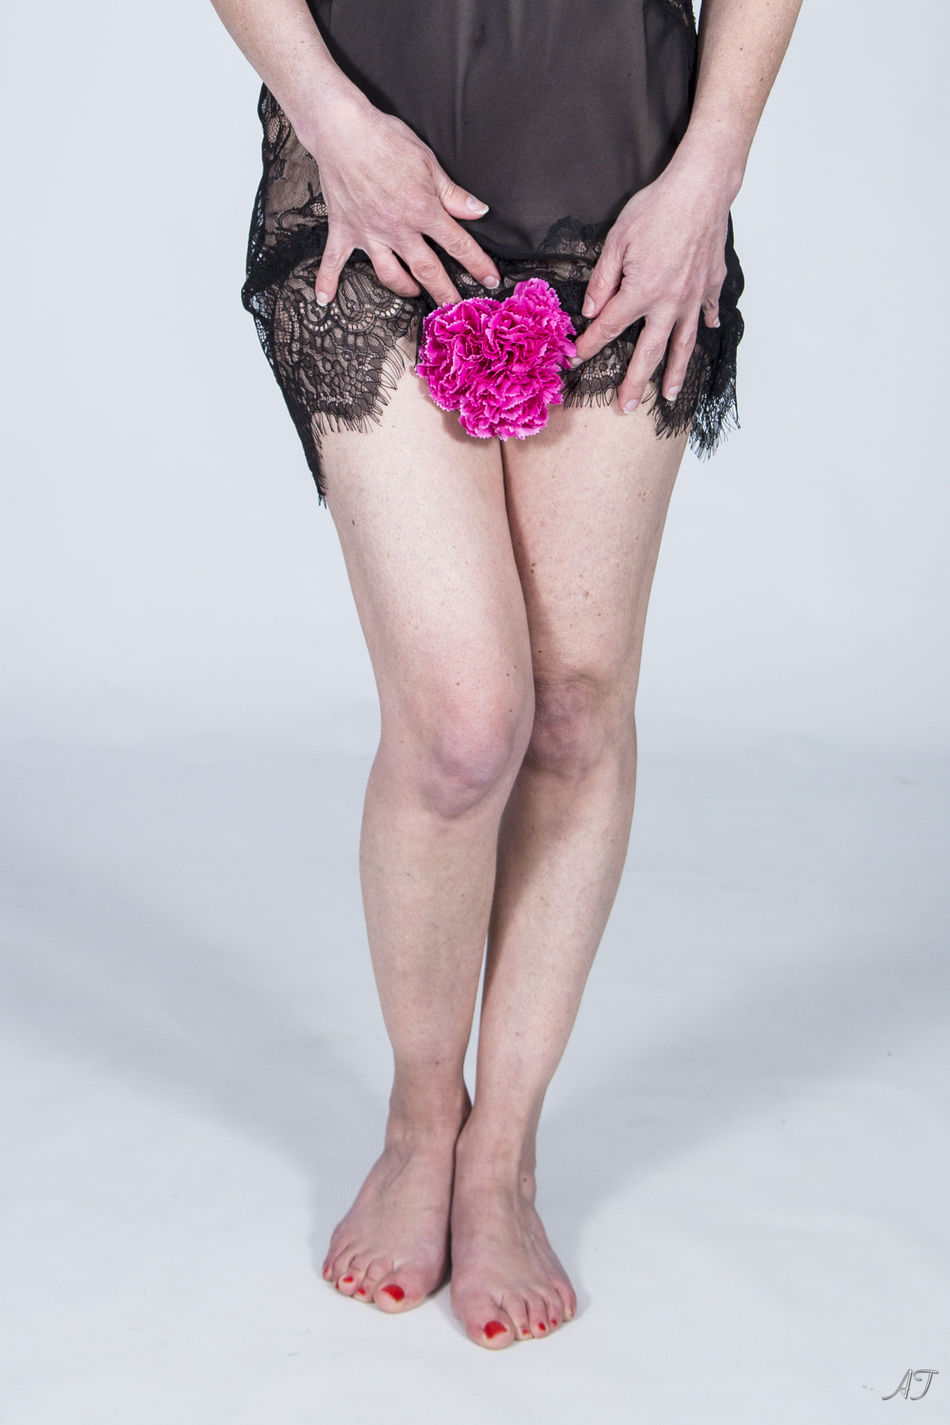 Close-up Flowers Human Body Part Lifestyles Low Section One Person Pink Color Real People Studio Shoot